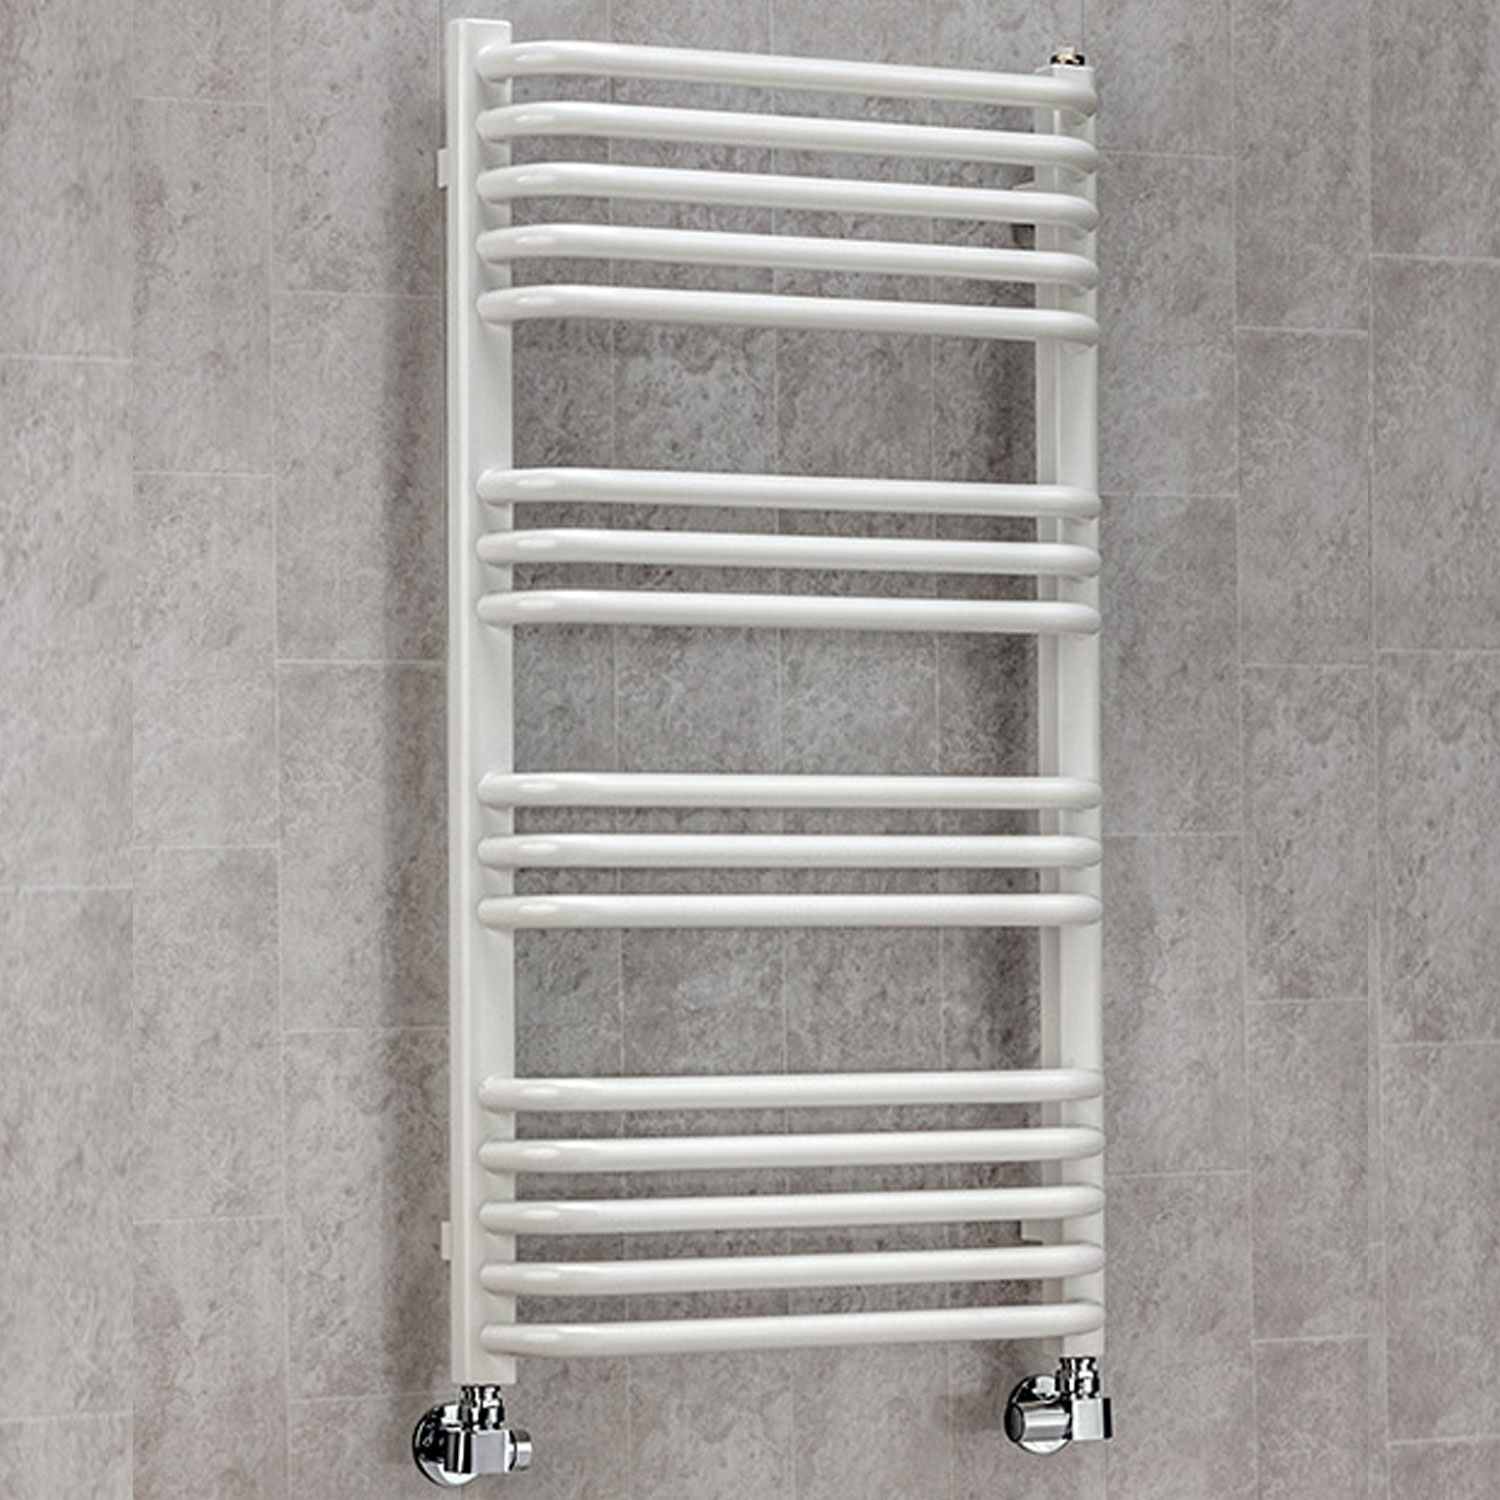 S4H Apsley Heated Towel Rail 620mm H x 600mm W - White